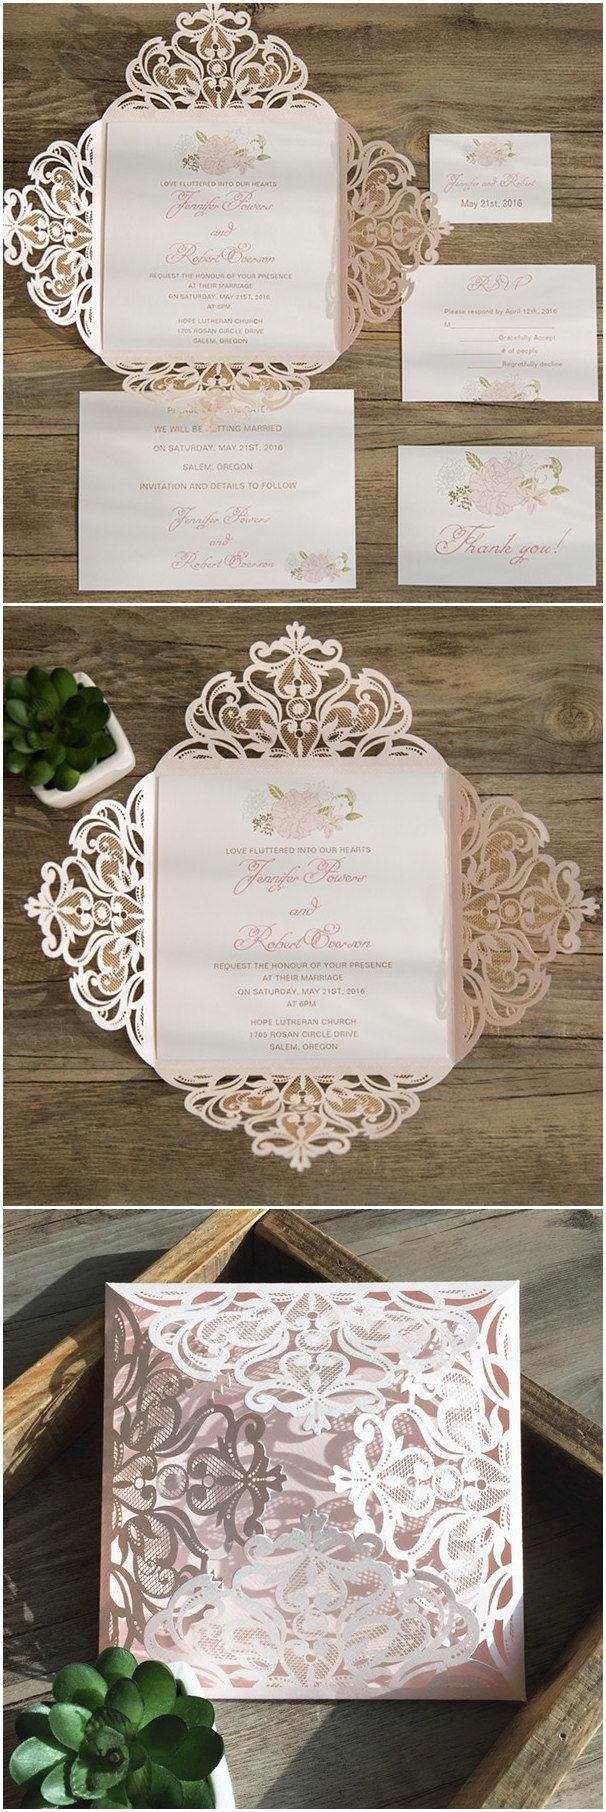 muslim wedding card invitation quotes%0A blush pink floral laser cut spring wedding invites EWWS